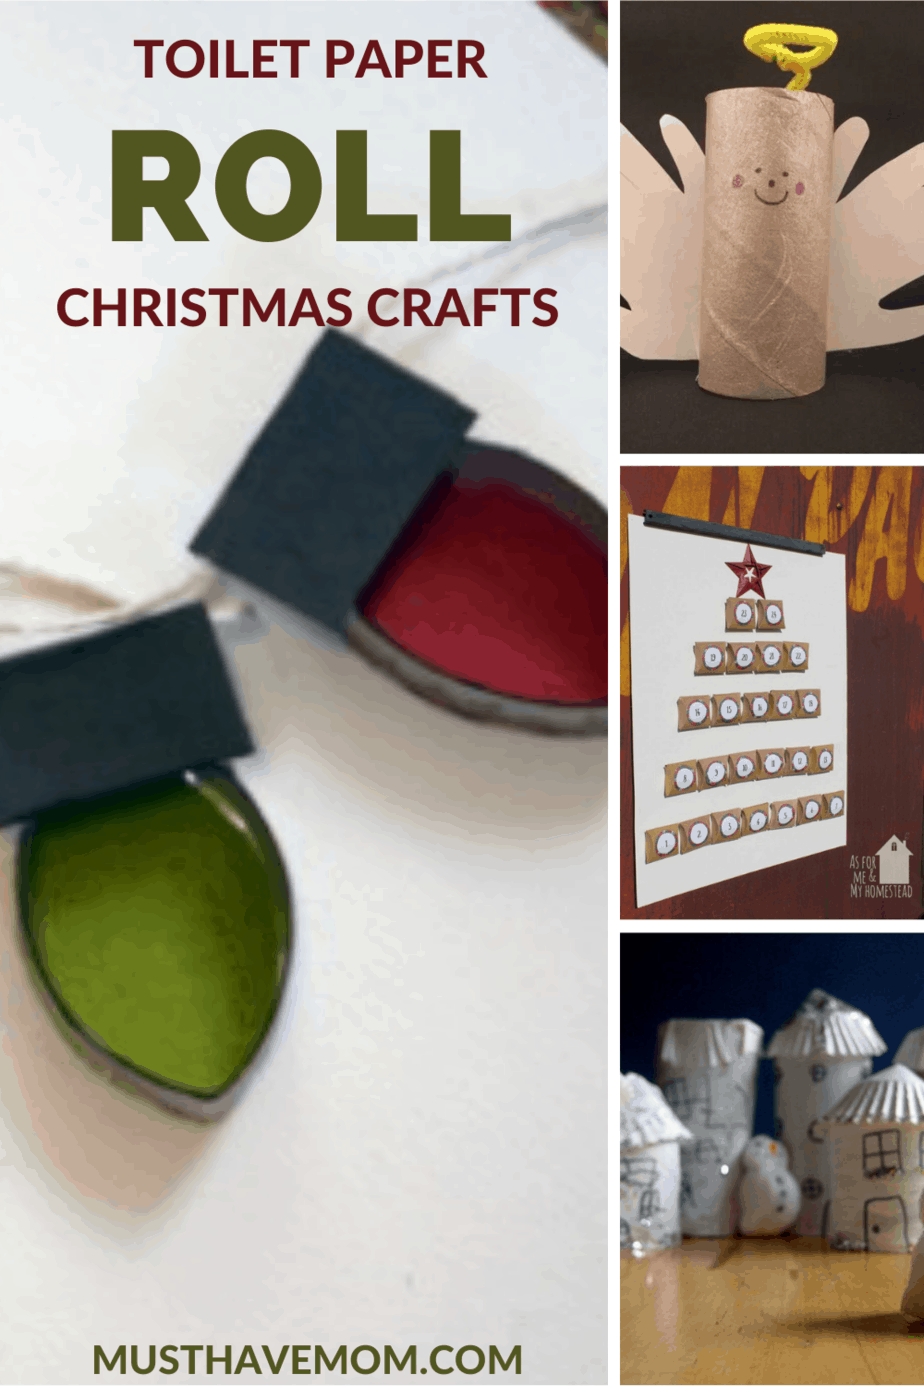 Toilet Paper Roll Christmas Crafts. These toilet paper roll Christmas crafts are the perfect way to keep kids busy without spending a fortune on supplies. #MustHaveMom #crafts #Christmas #craftsforkids #kidscrafts